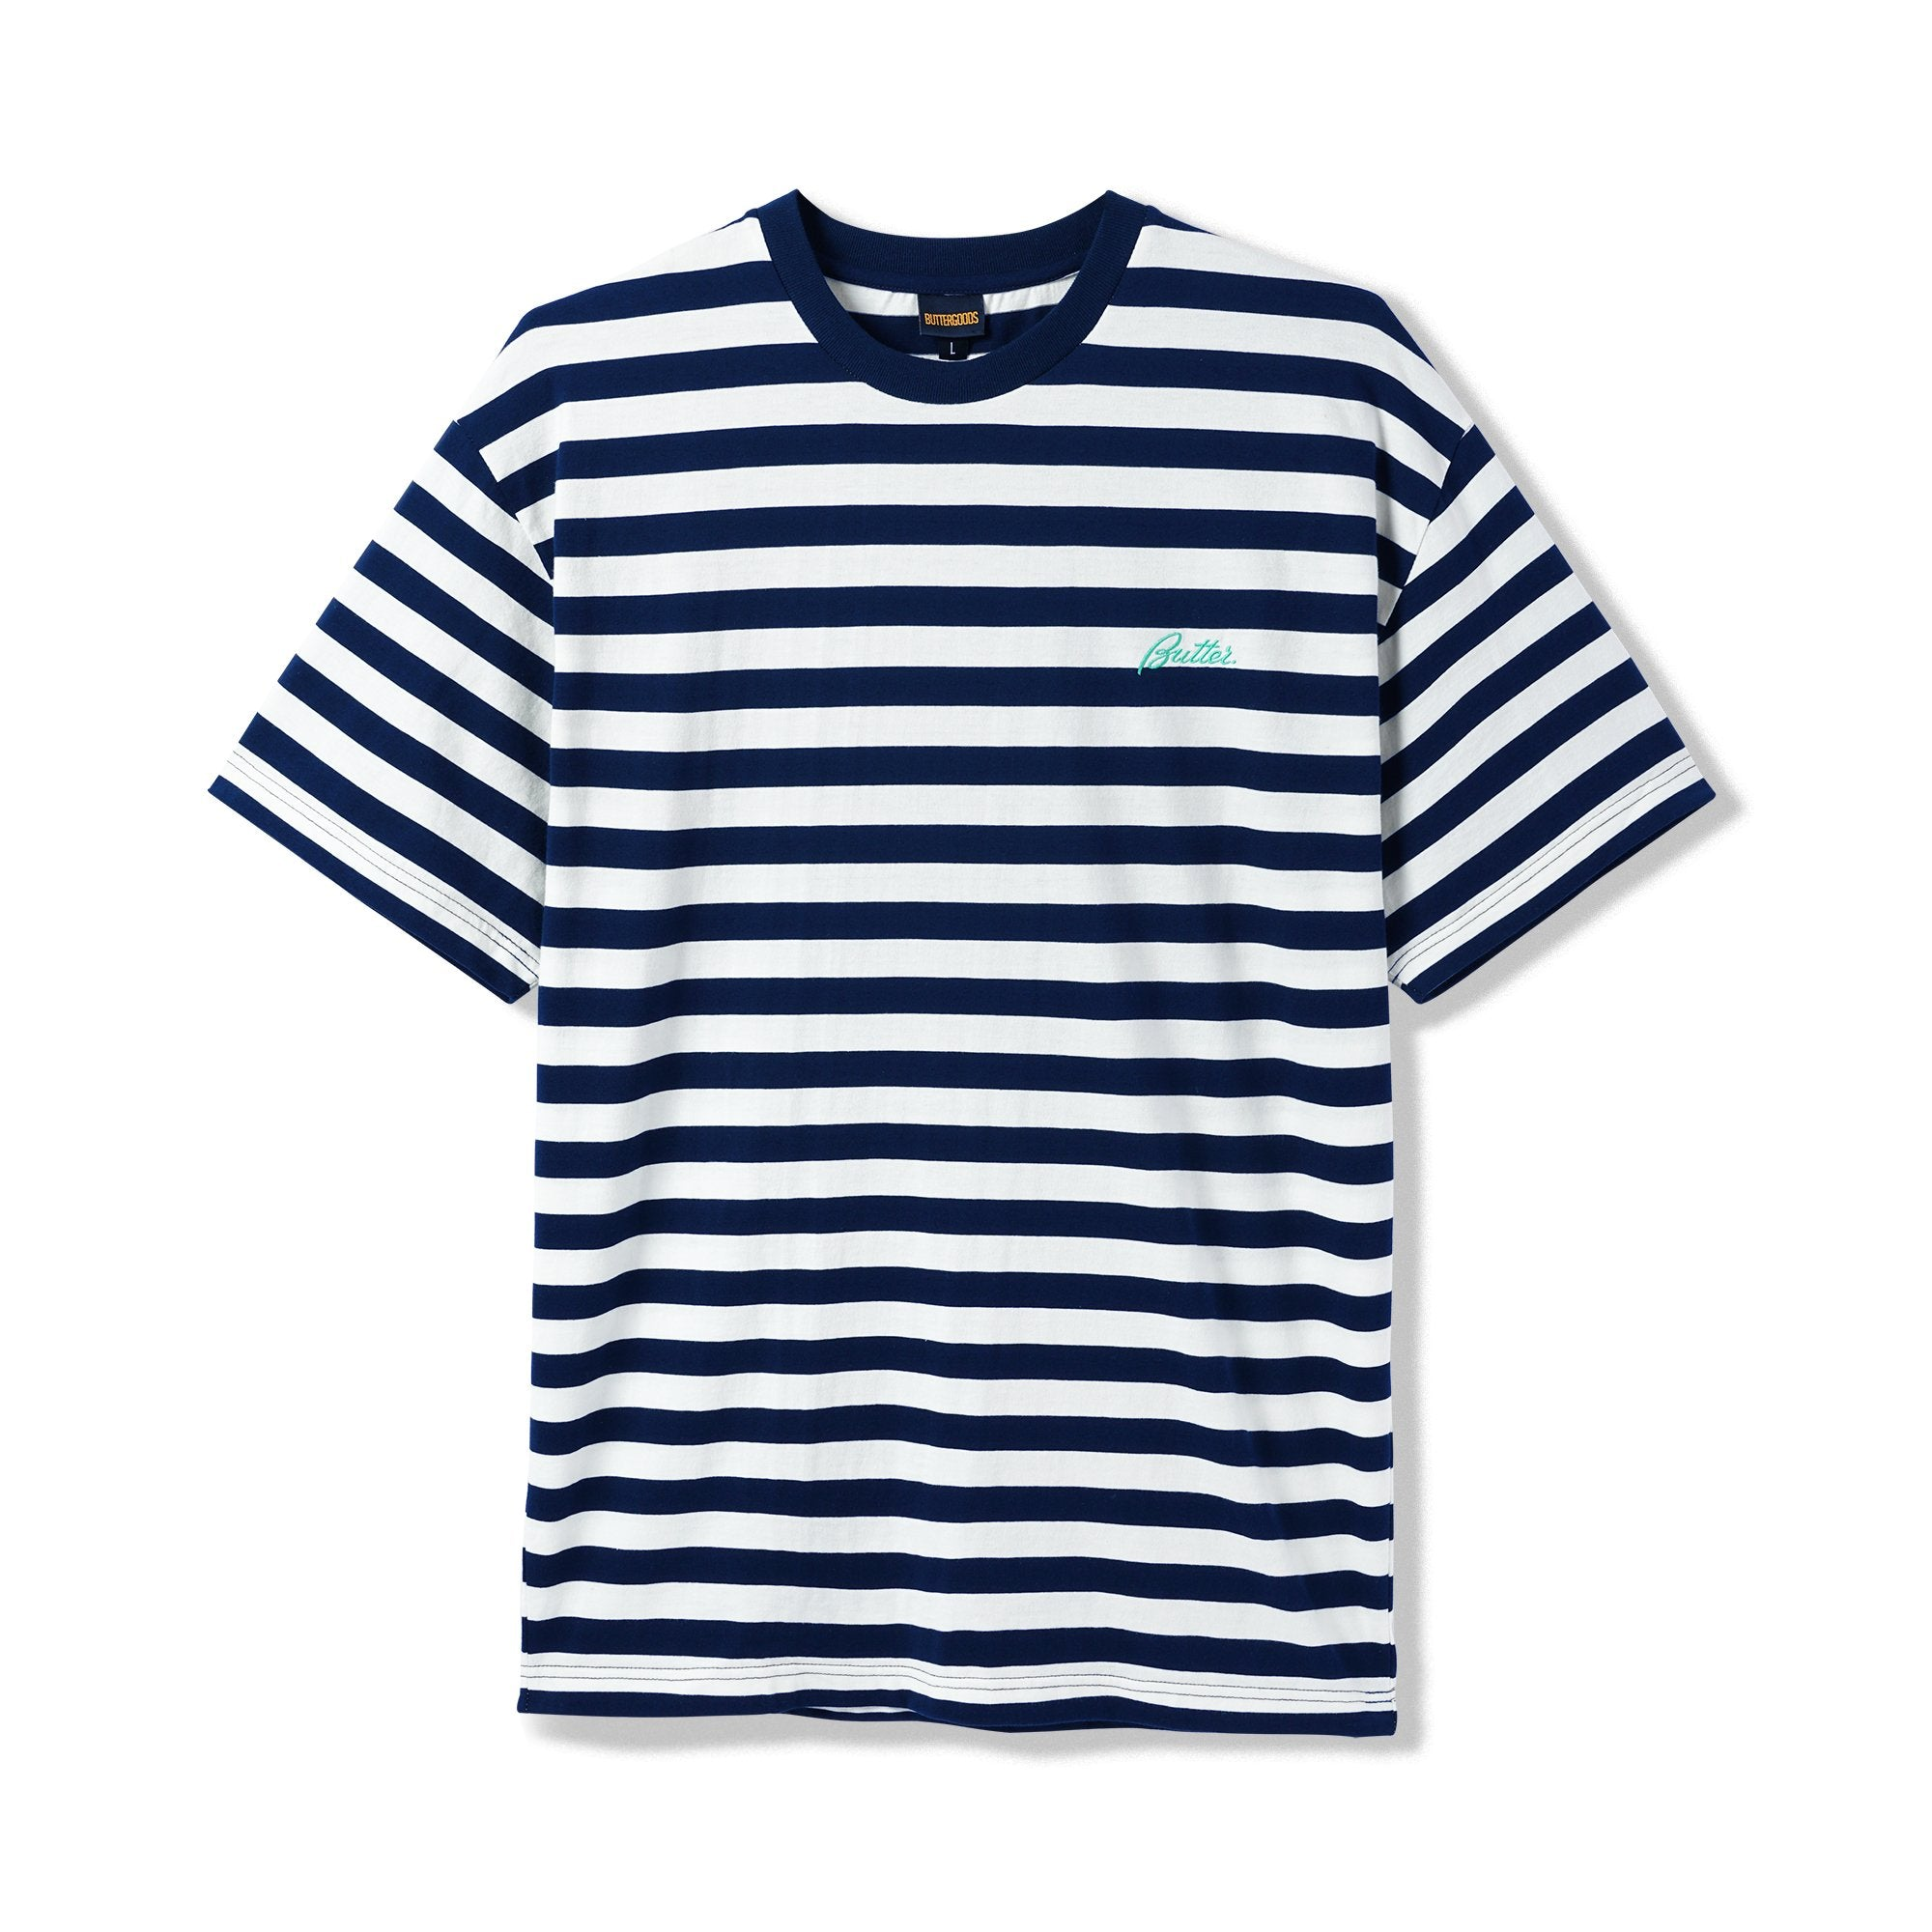 Butter Goods Hume Stripe Tee